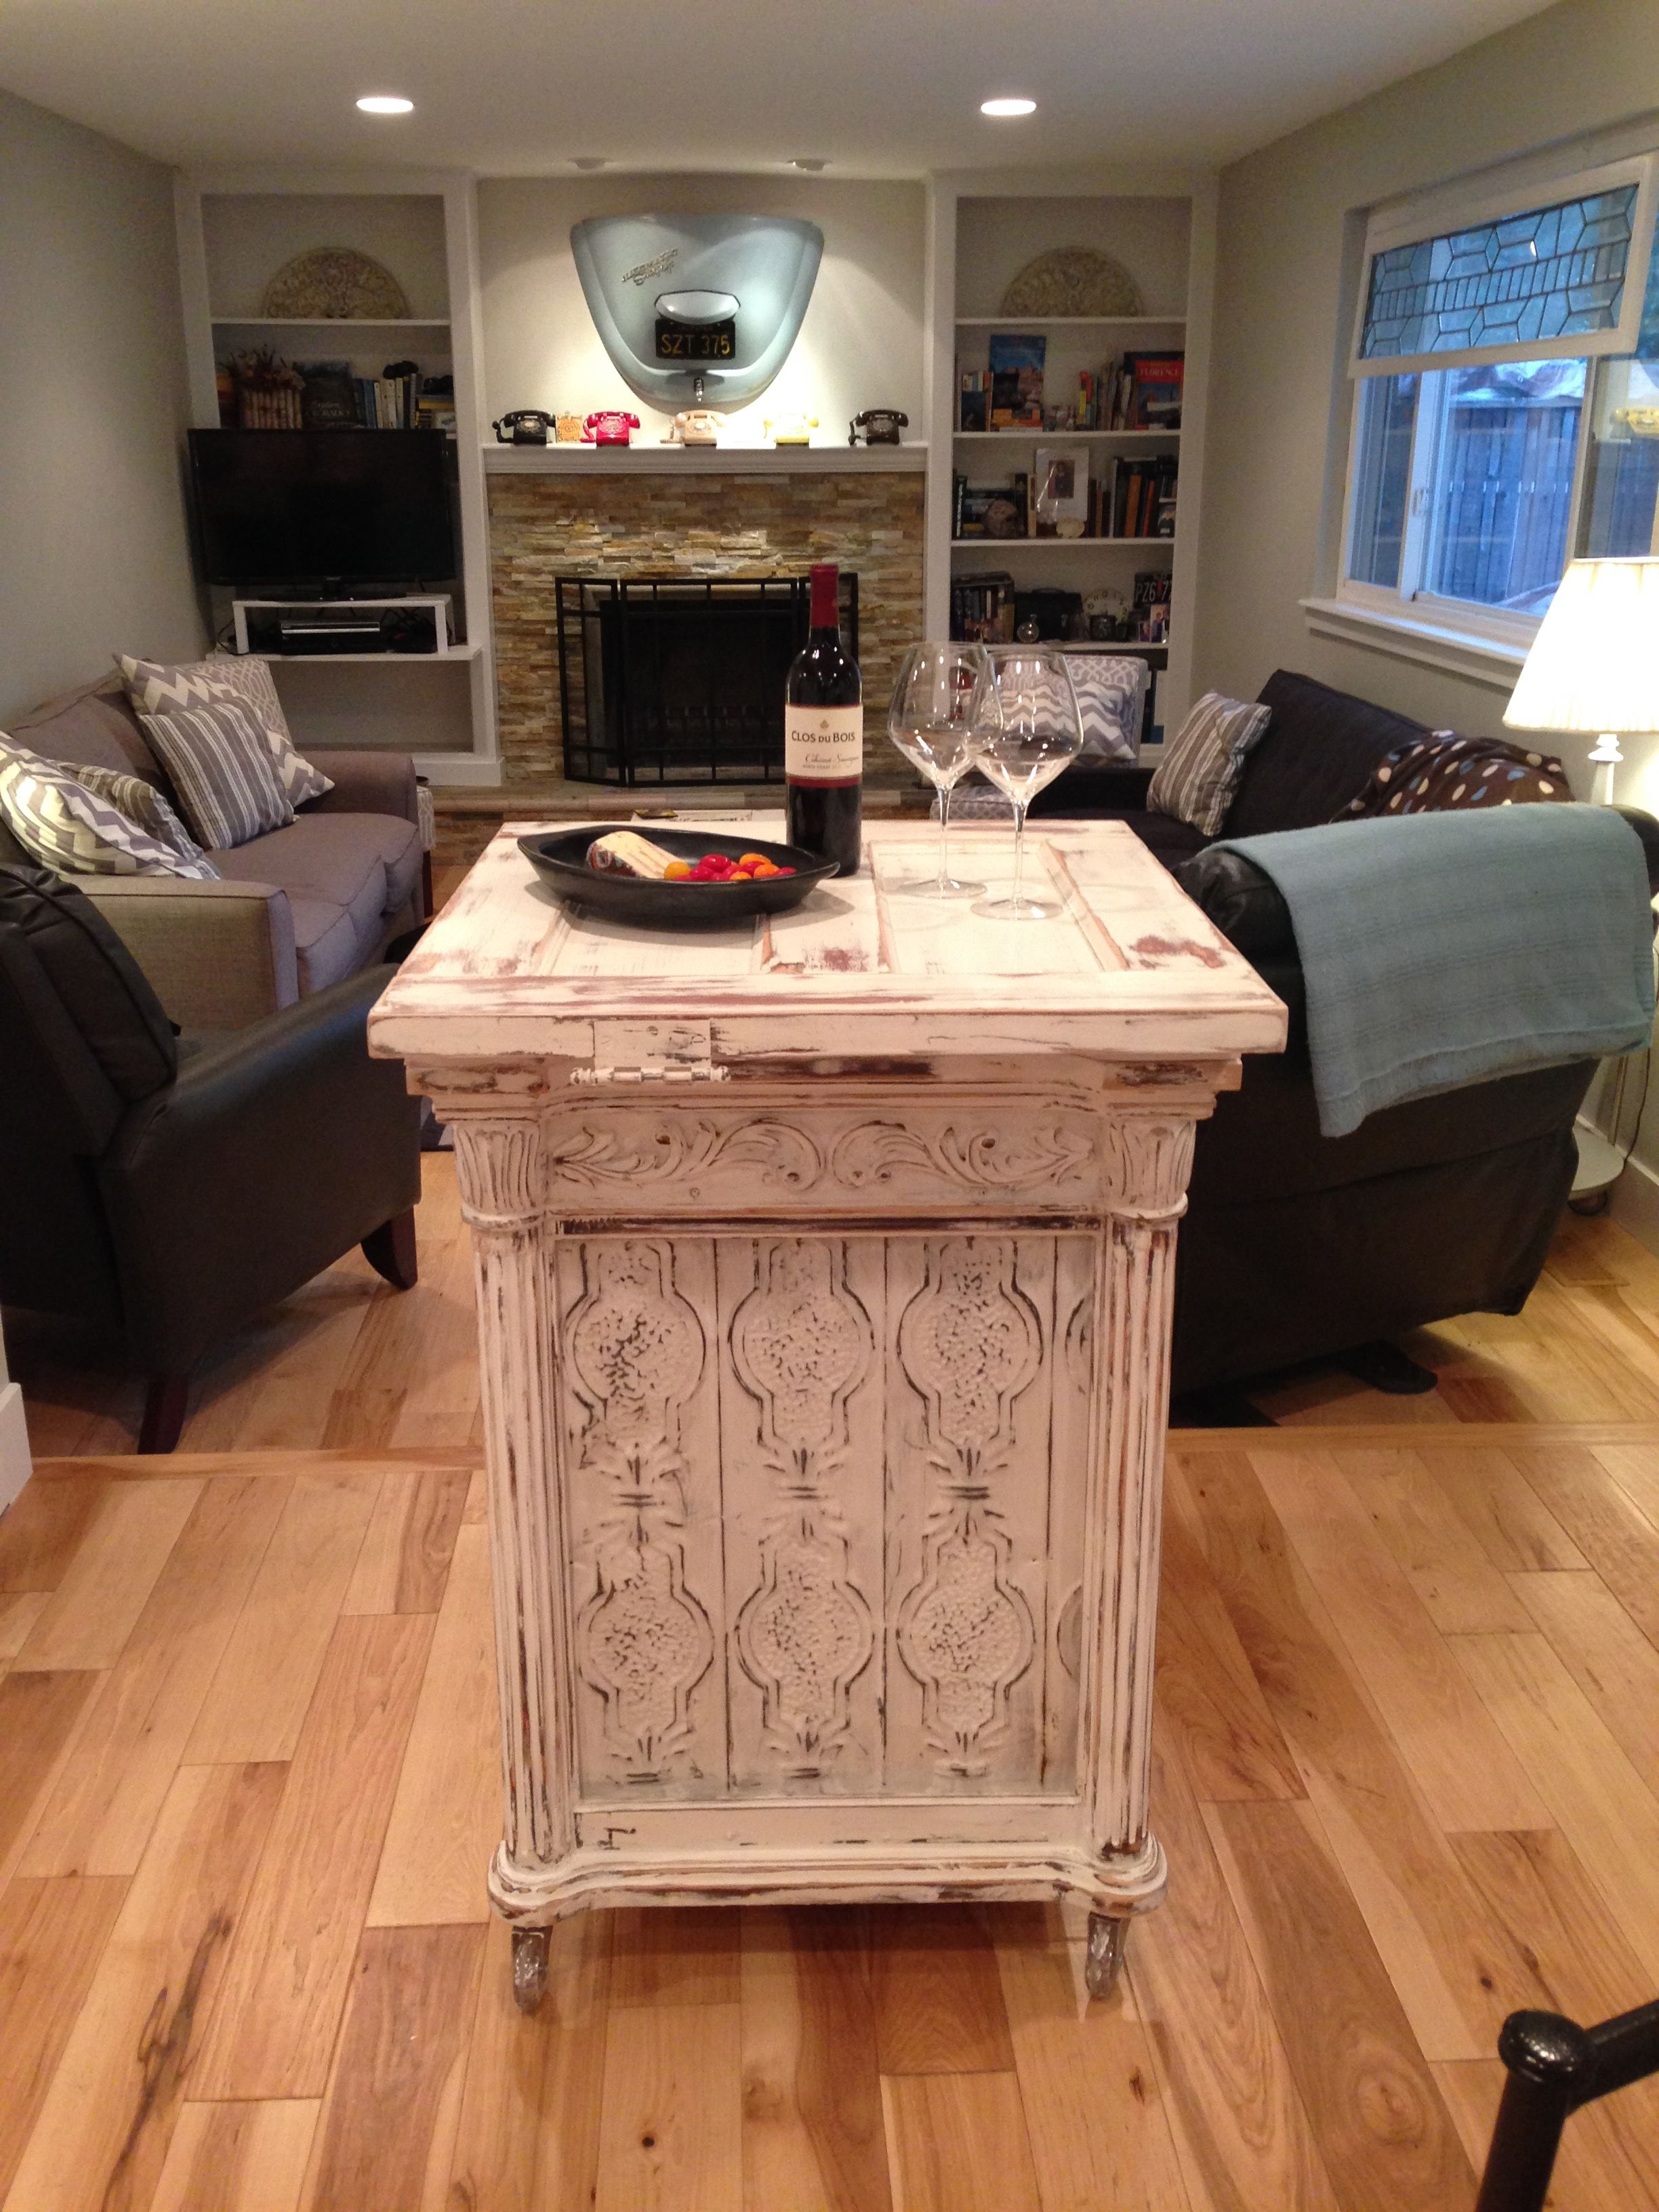 Salvage Kitchen Cabinets Upcycled Moblie Bar Kitchen Island Made From Rescued Kithen